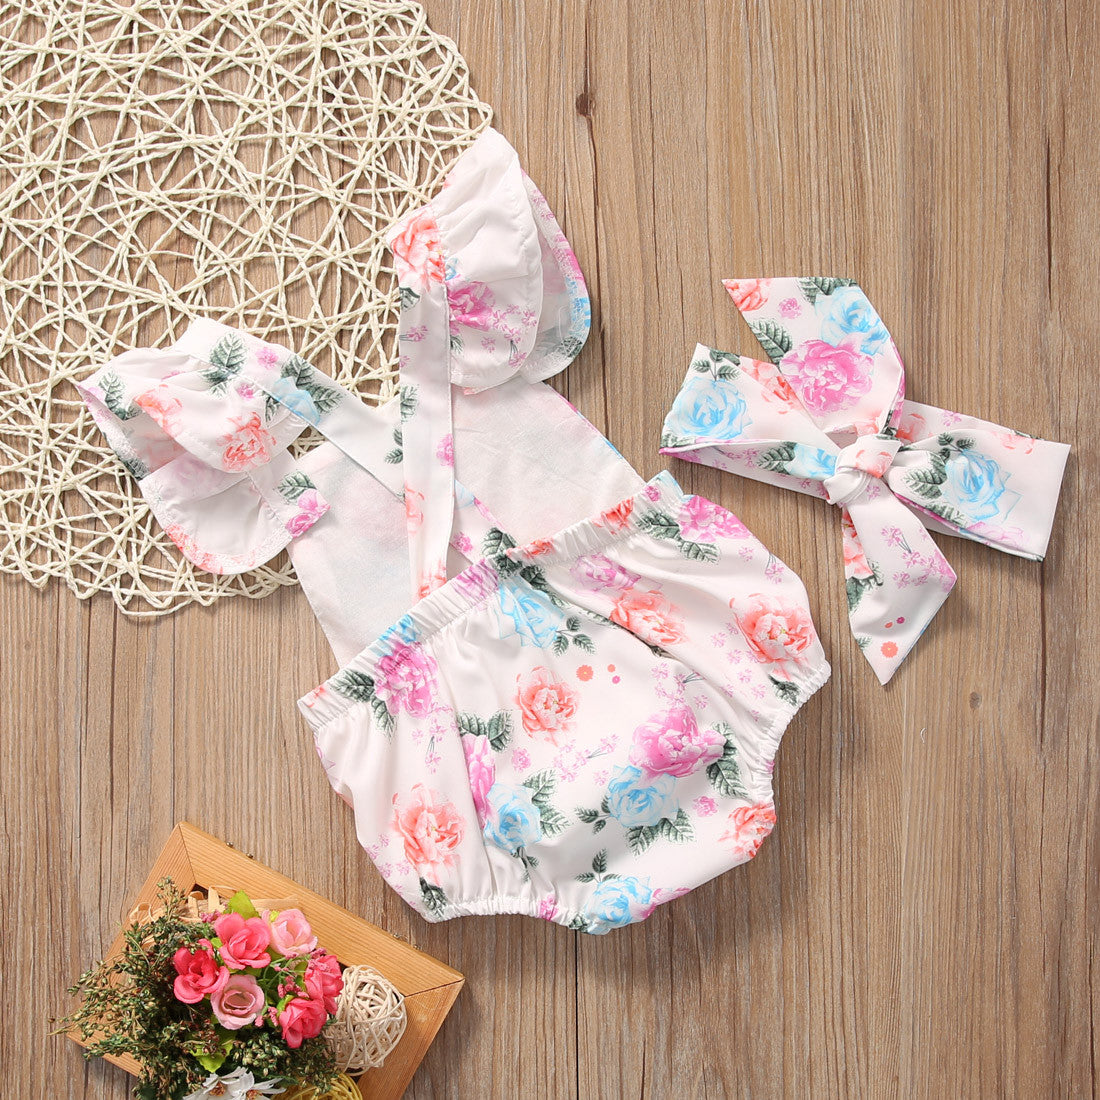 ed6a55422 Adorable Floral Baby Romper - 60% OFF - Favorite e-Store